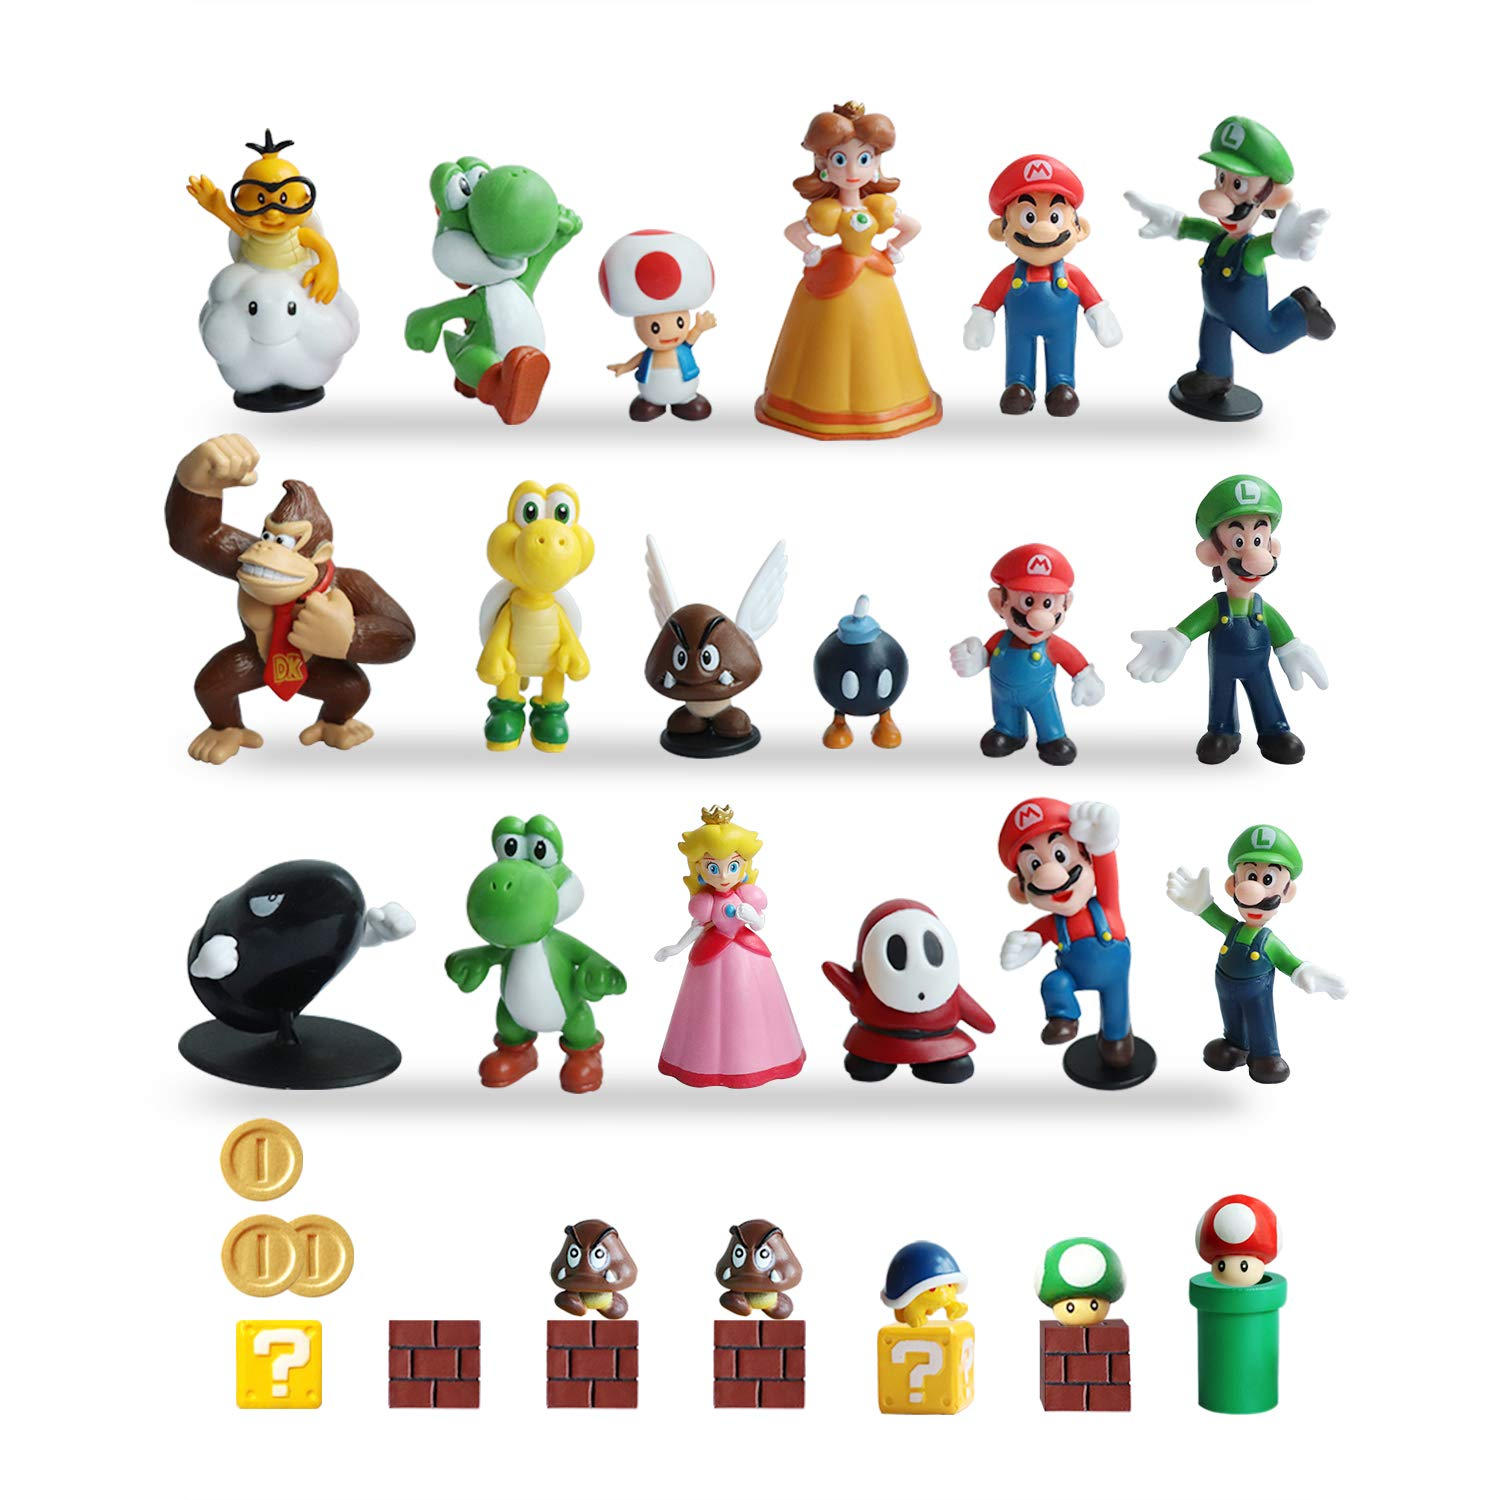 HXDZFX 32 PCS Super Mario Action Figures,Super Mario Bros Figurines Peach Princess,Daisy Princess,Turtle,Mushroom,Orangutan,Coin,Brick,Perfect for Onaments Decoration collectionism by HXDZFX